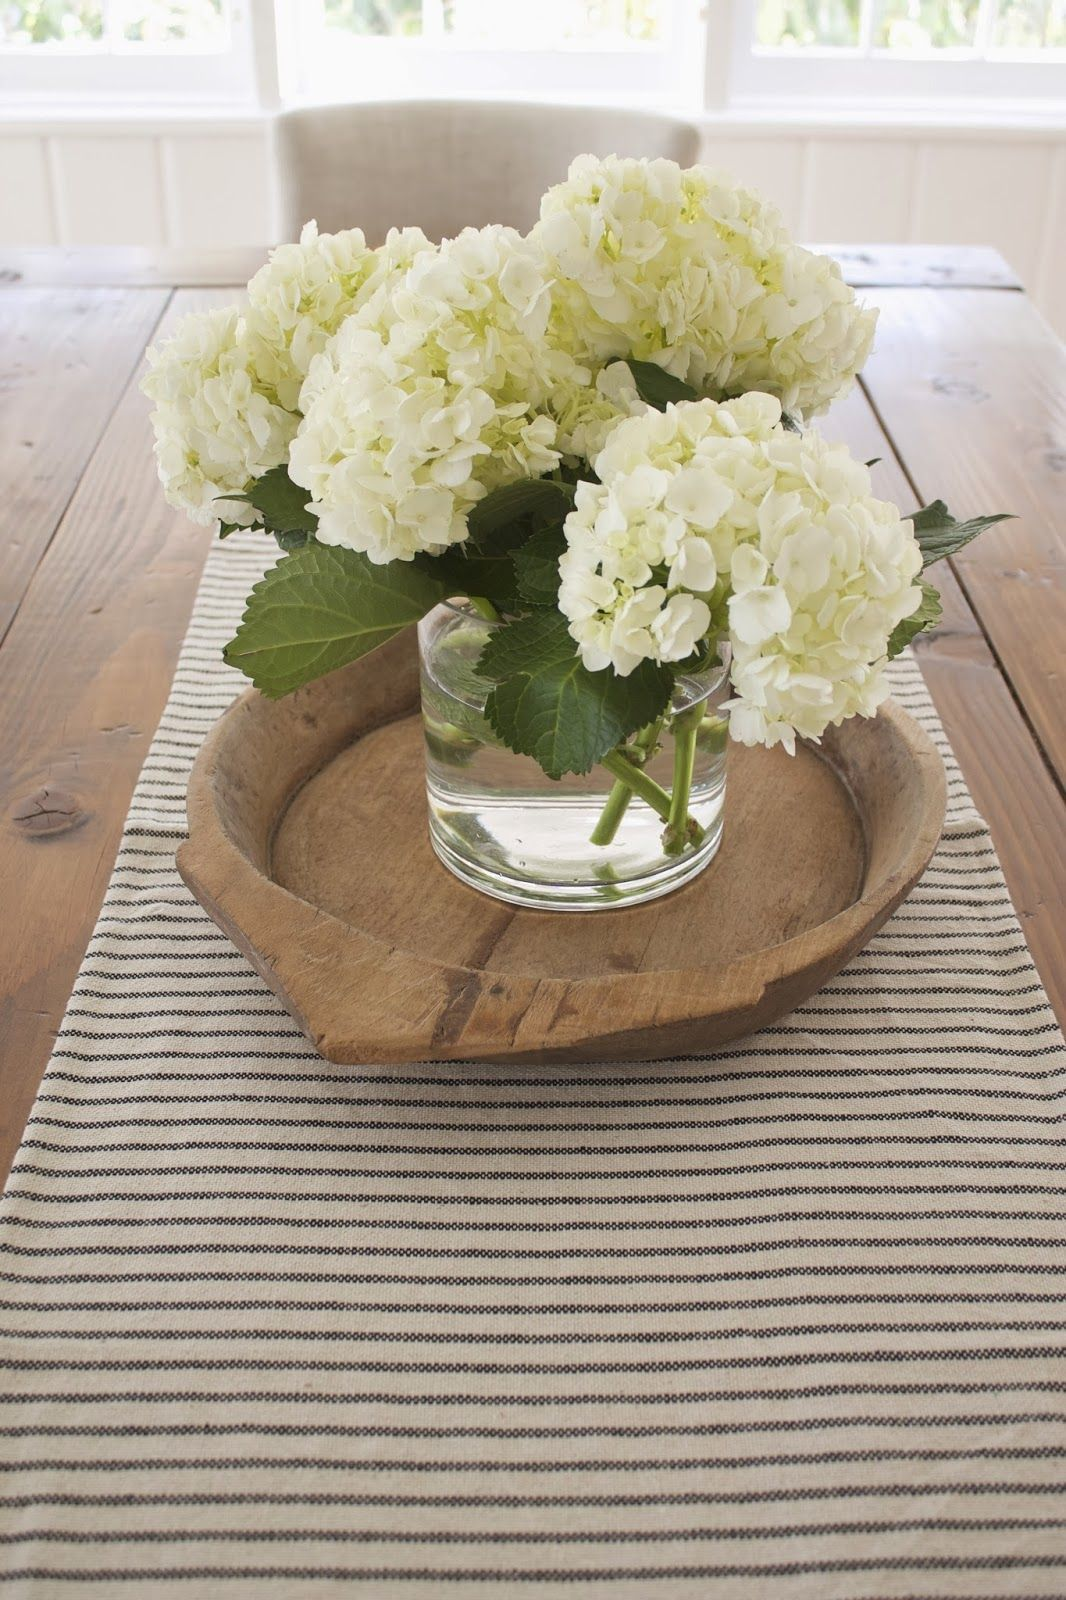 Nothing Like A Big Hydrangea Bunch On The Table Top Kitchen DecorationsFarmhouse